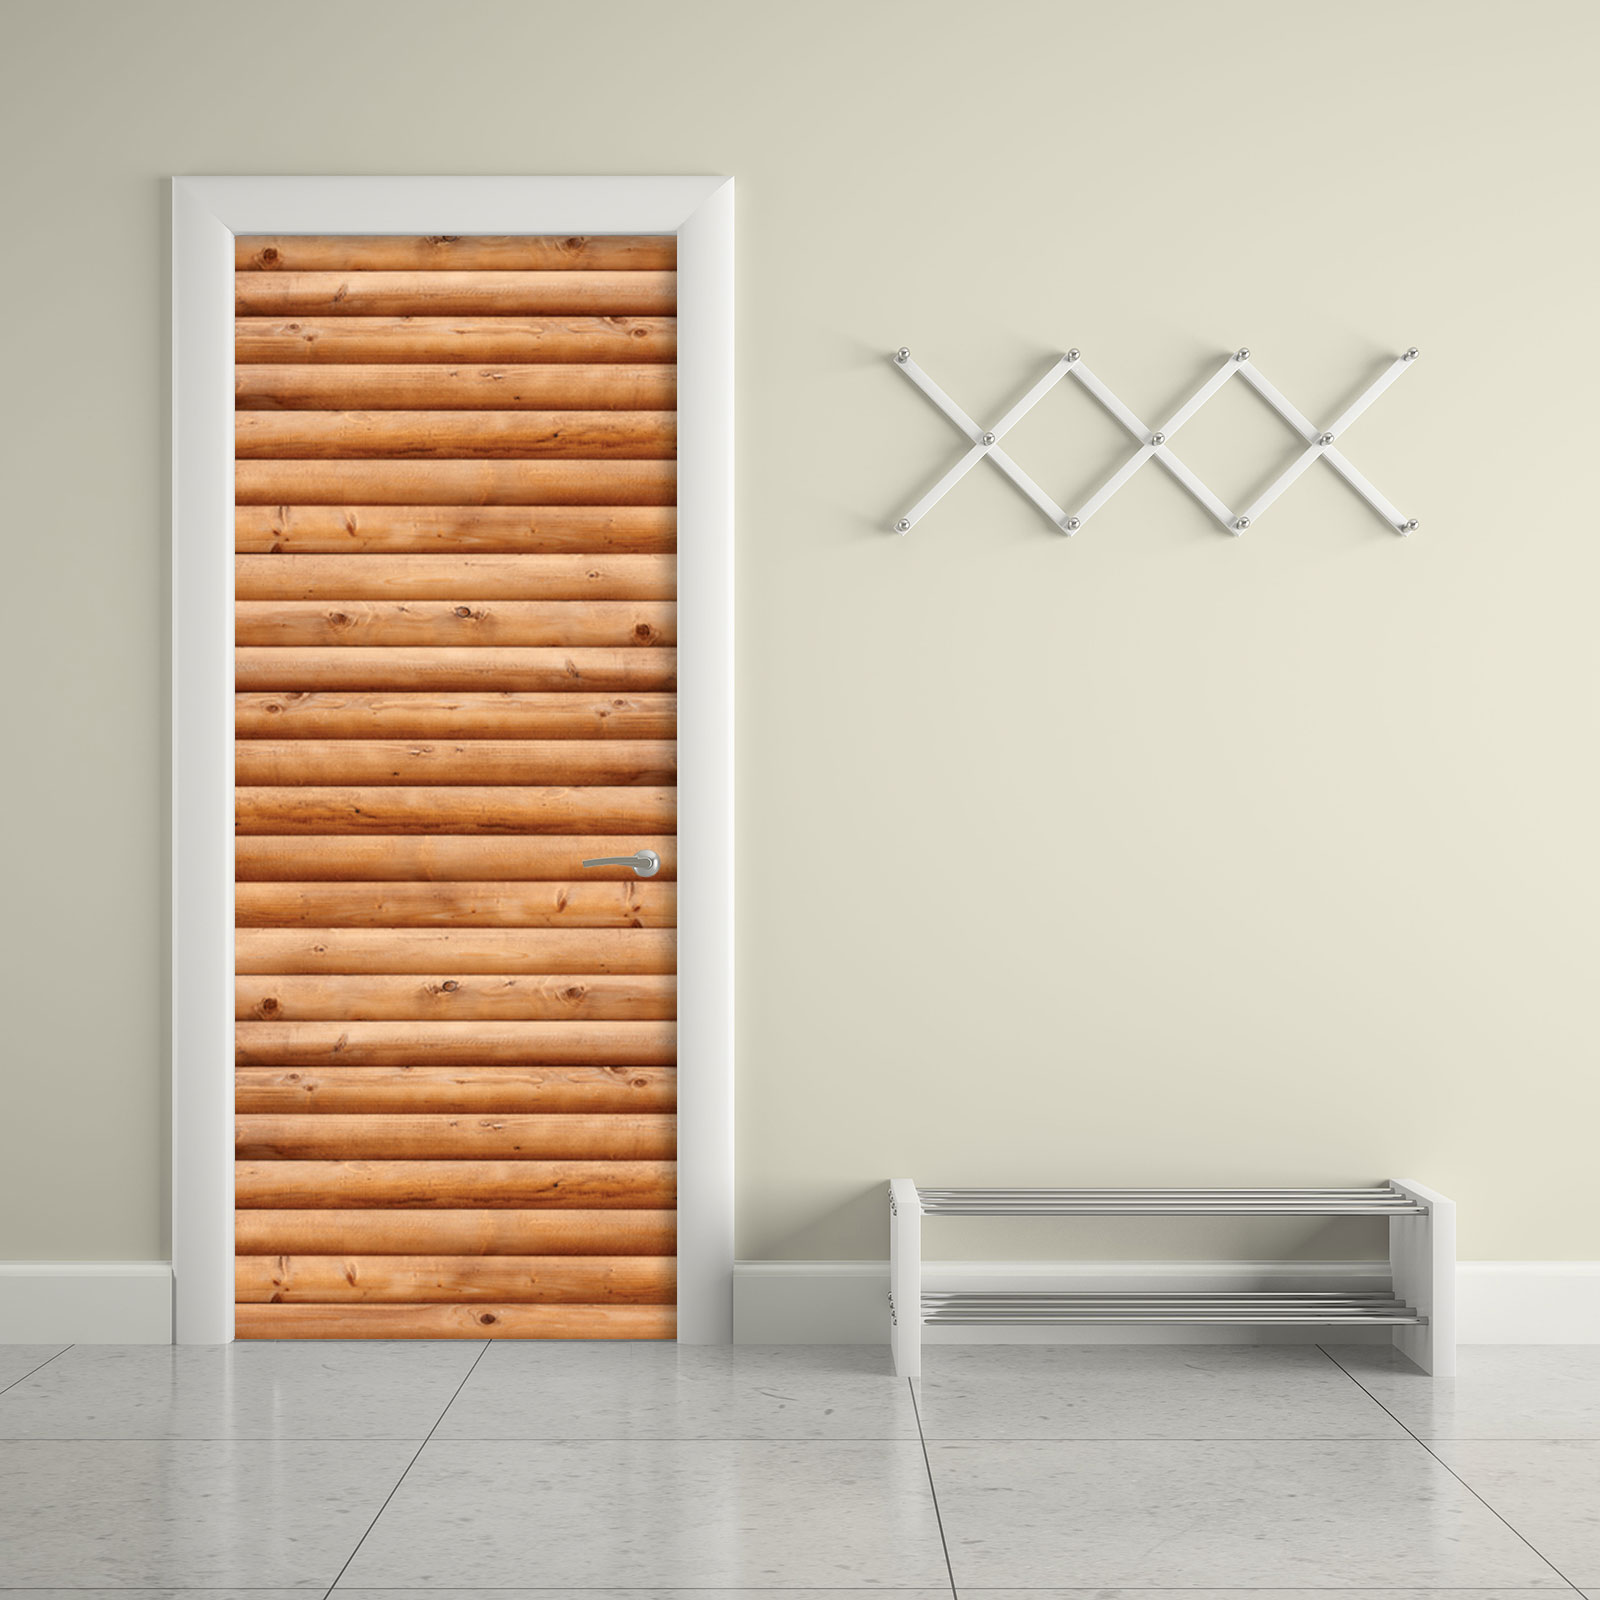 Door Wall Sticker Contact Paper Self Adhesive Wallpaper Wooden Logs Door #1 size home